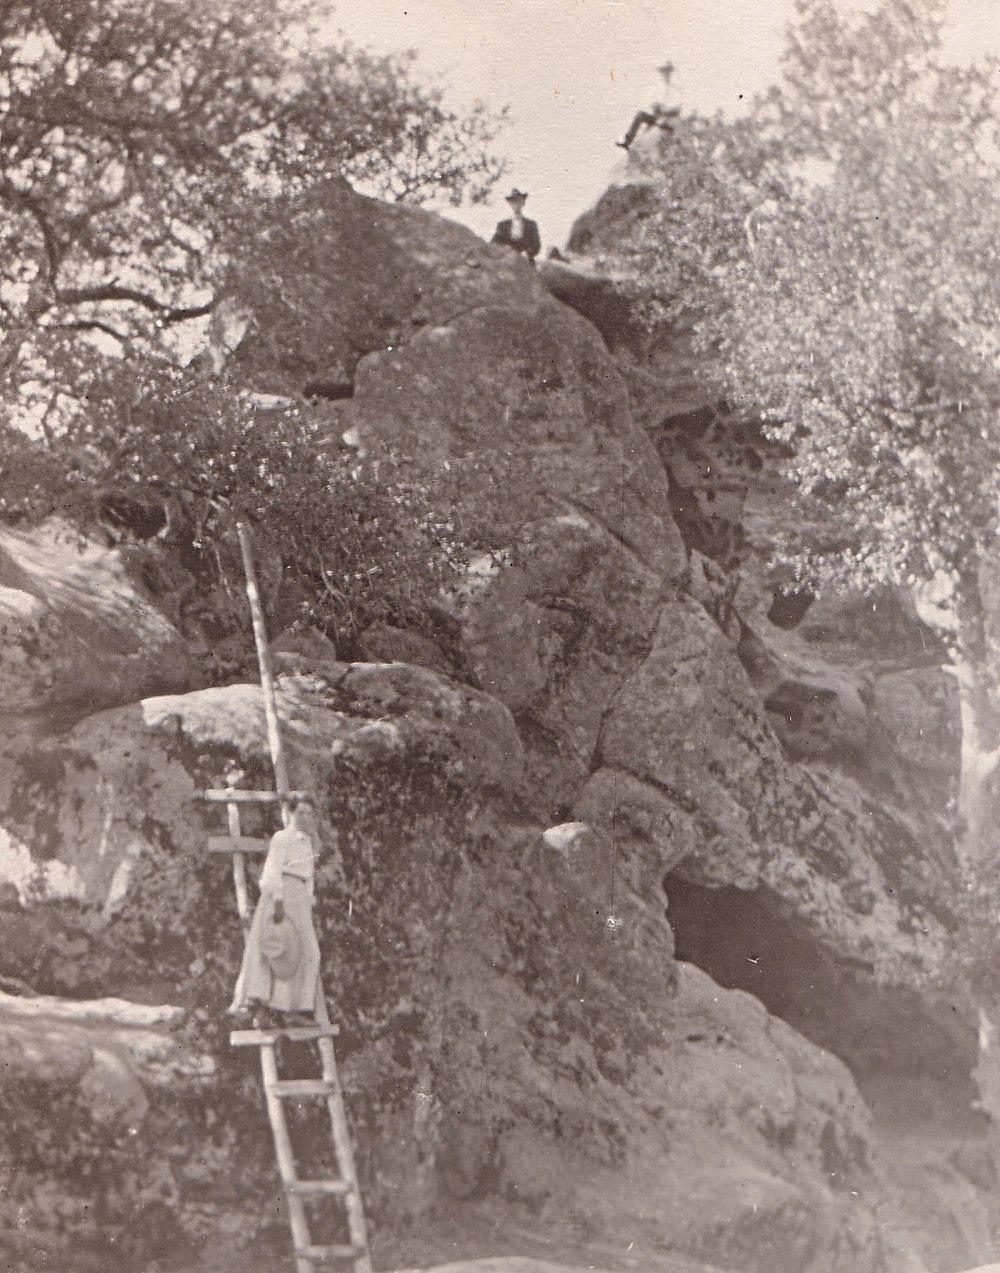 Victorian-Era Climbing - Visitors to Castle Rock in the 19th century use a ladder to access the top of the monoliths.